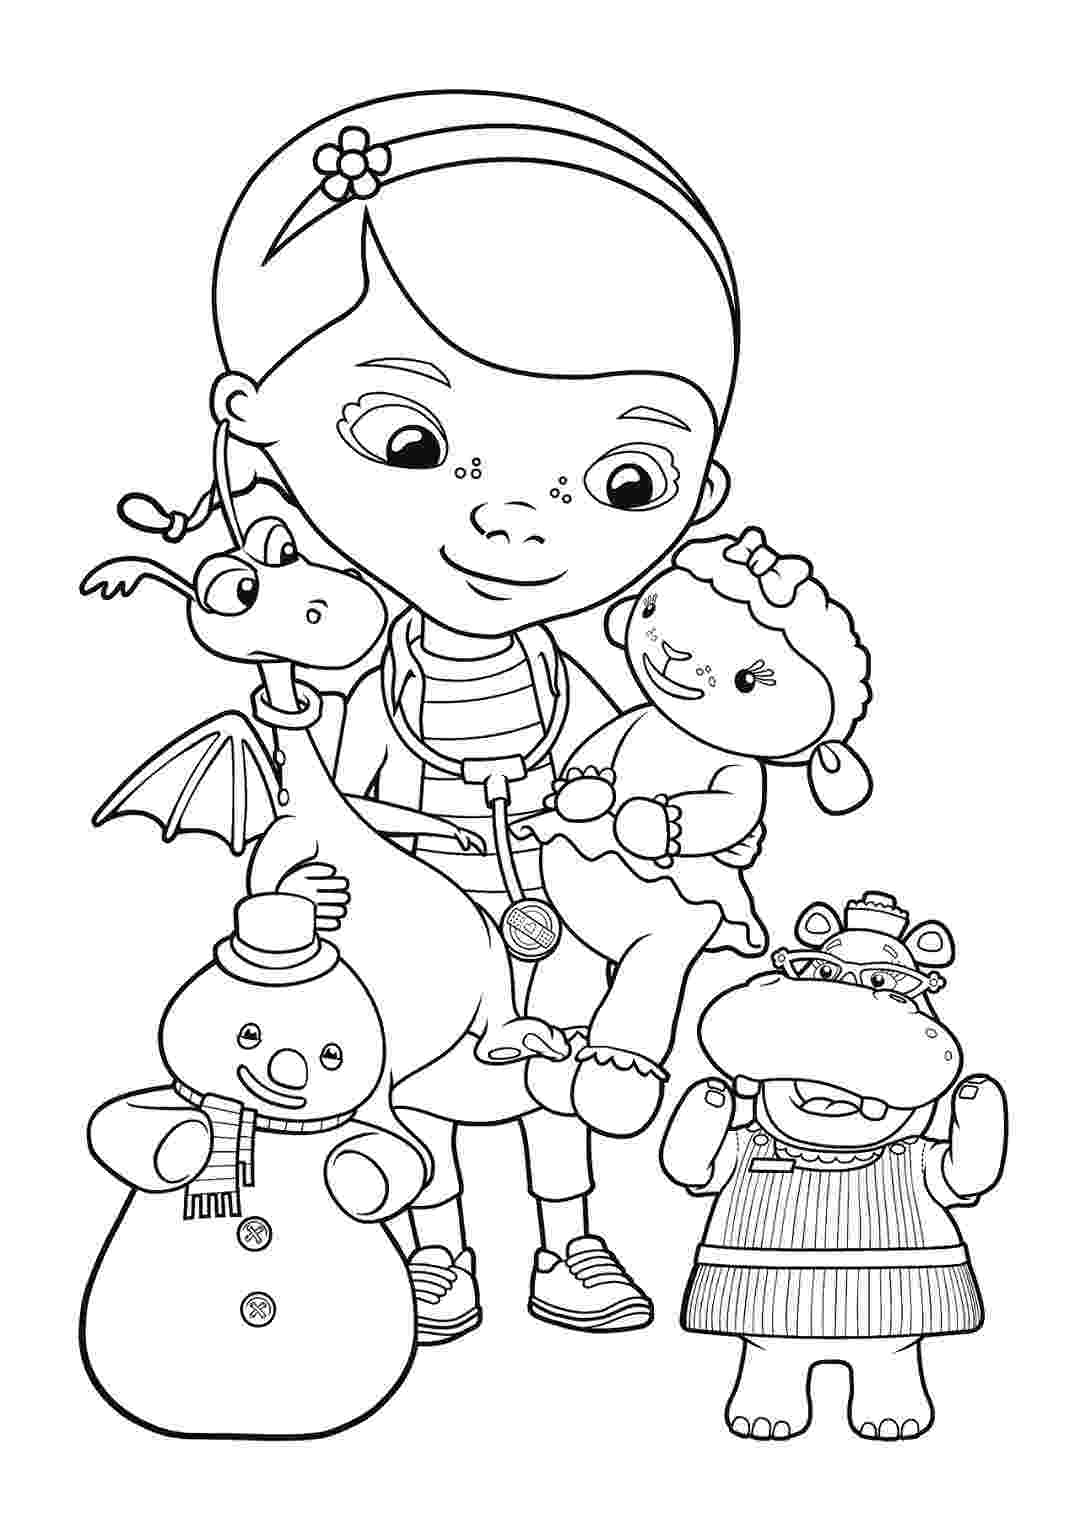 doc mcstuffins printable coloring pages doc mcstuffins coloring pages to download and print for free doc coloring printable pages mcstuffins